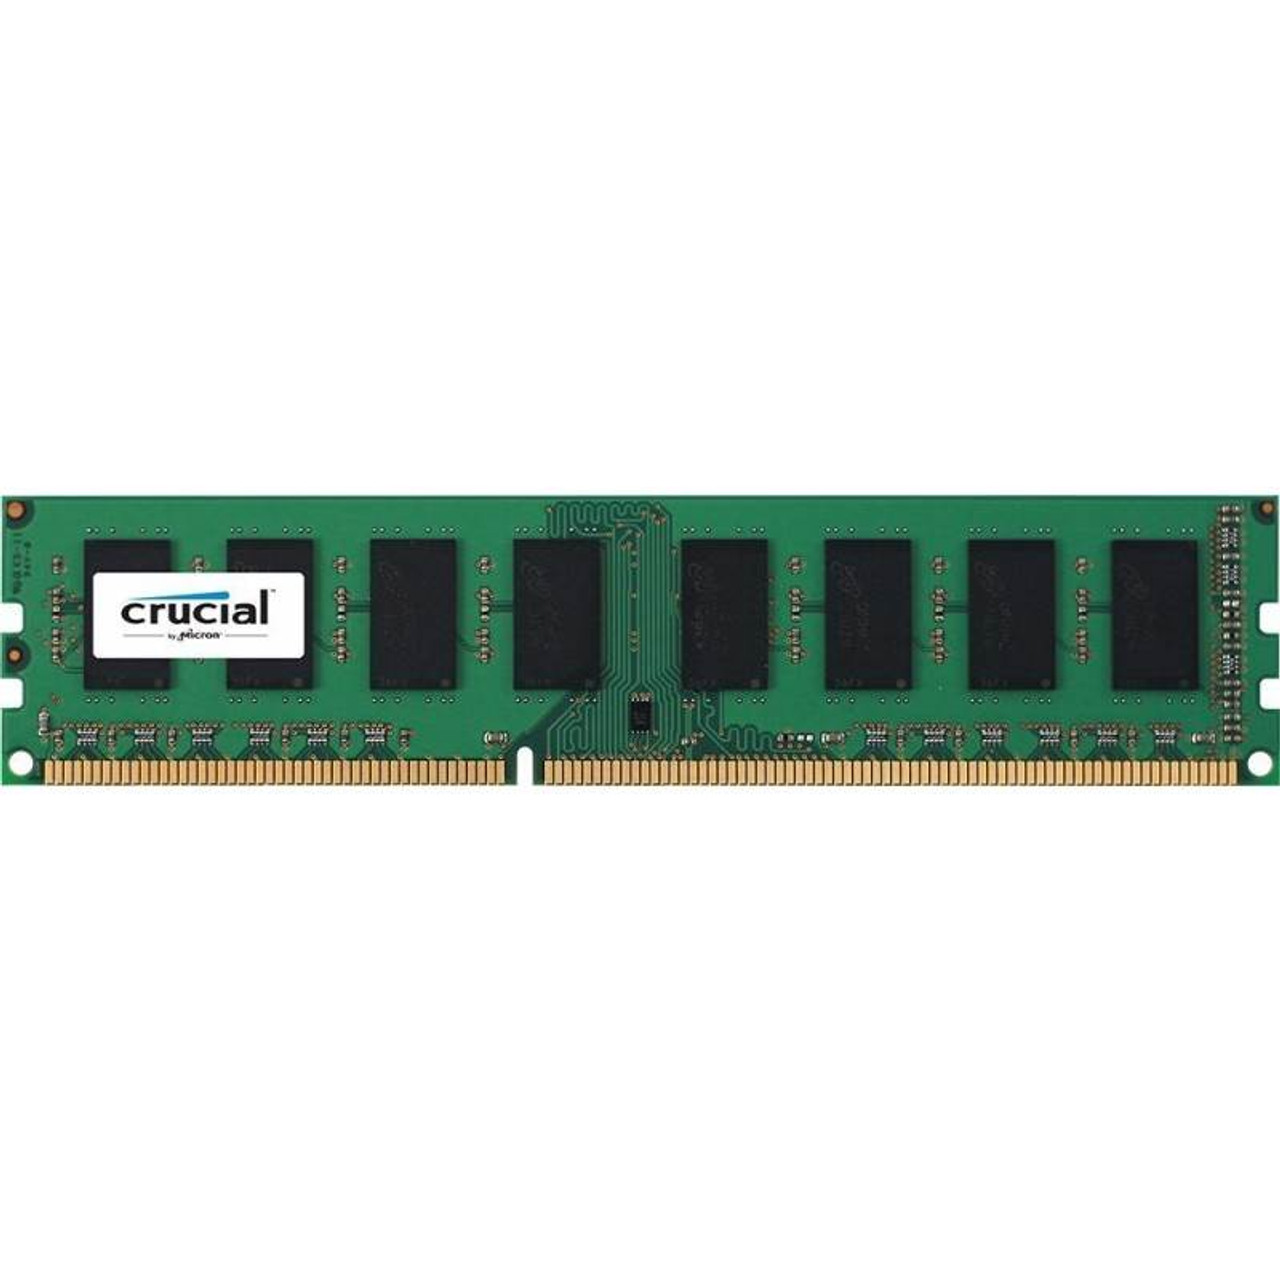 Image for Crucial 4GB (1x 4GB) DDR3L 1600MHz Memory CX Computer Superstore